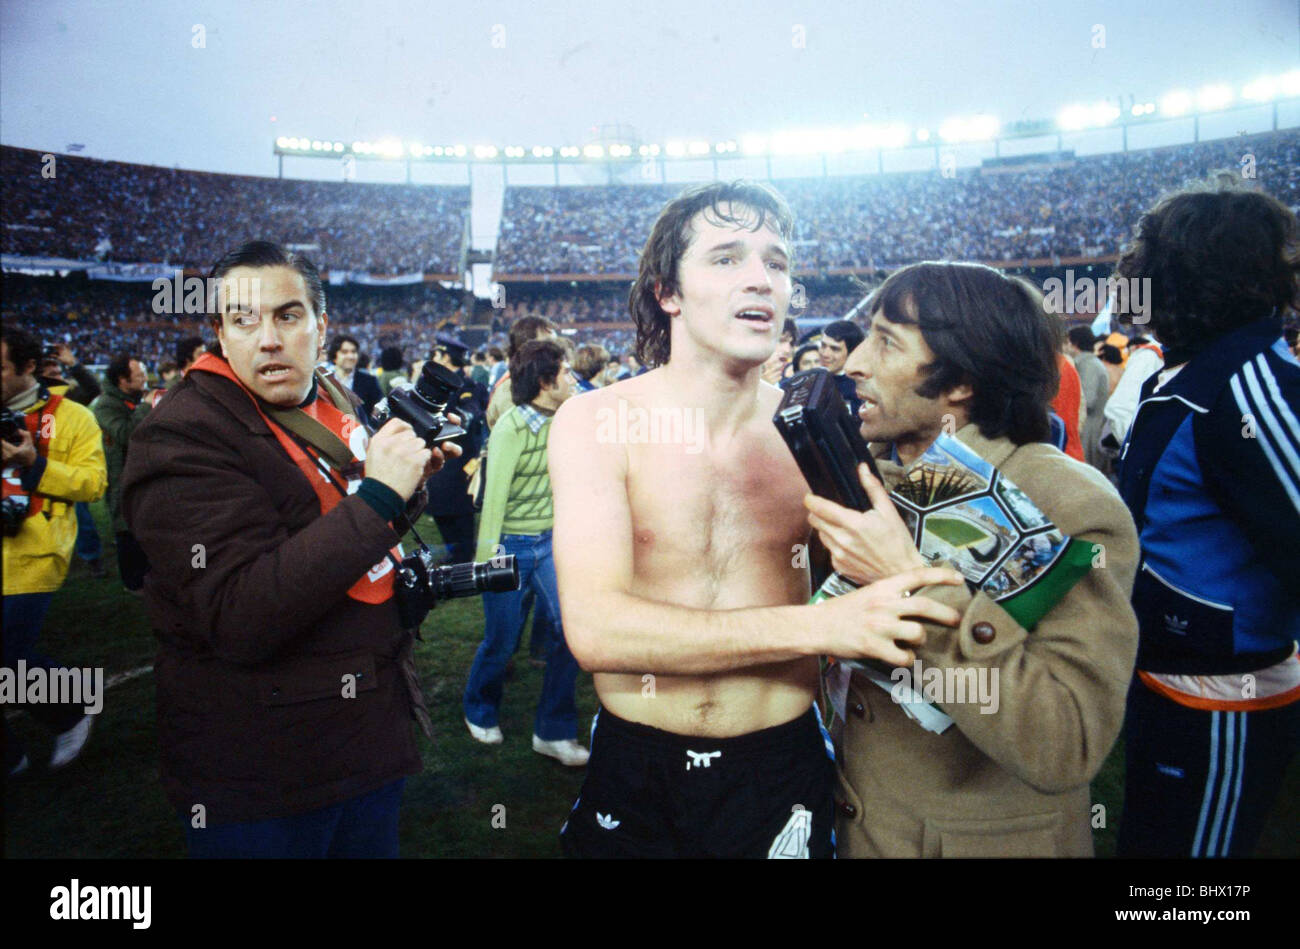 world-cup-1978-final-holland-1-argentina-3-after-extra-time-daniel-BHX17P.jpg